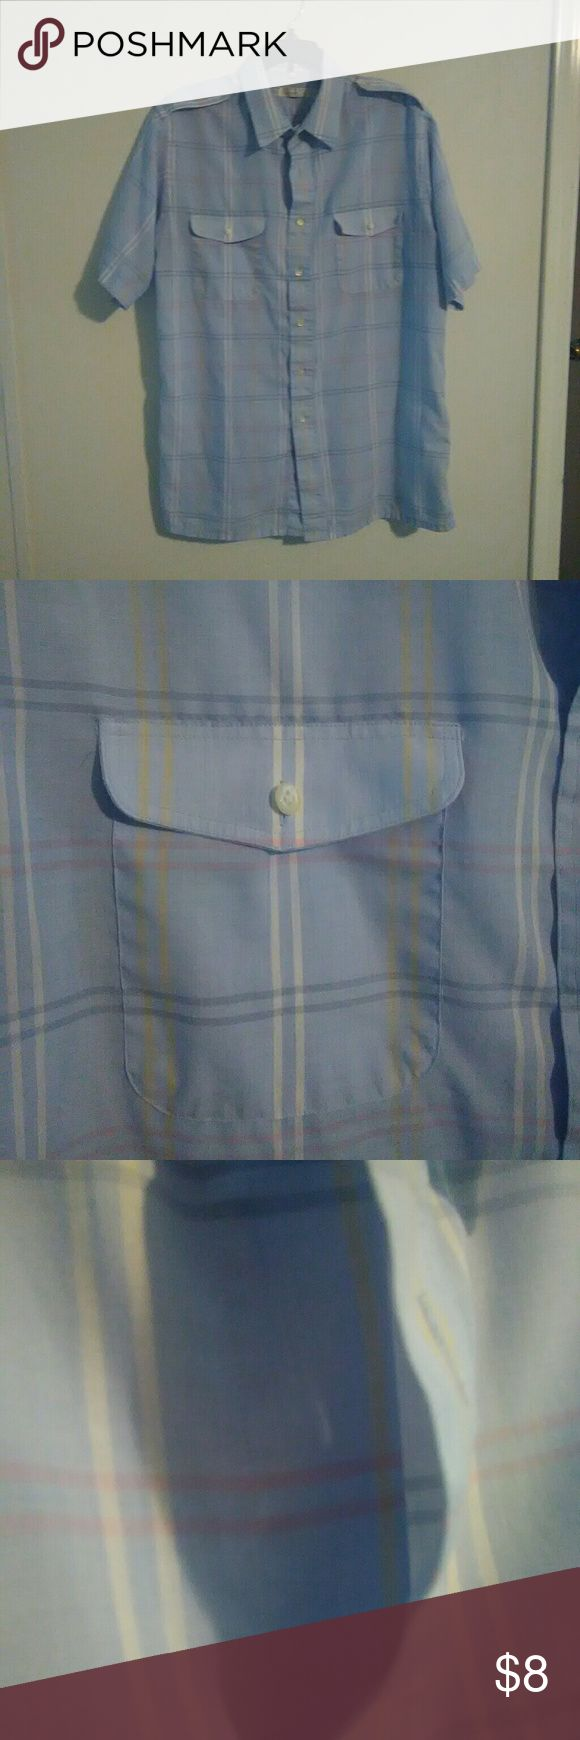 Christian Dior mens button down blue plaid L Christian Dior mens button down blue plaid short sleeve shirt. It is missing a button but no other flaws. Missing button shown in picture. Christian Dior Shirts Casual Button Down Shirts